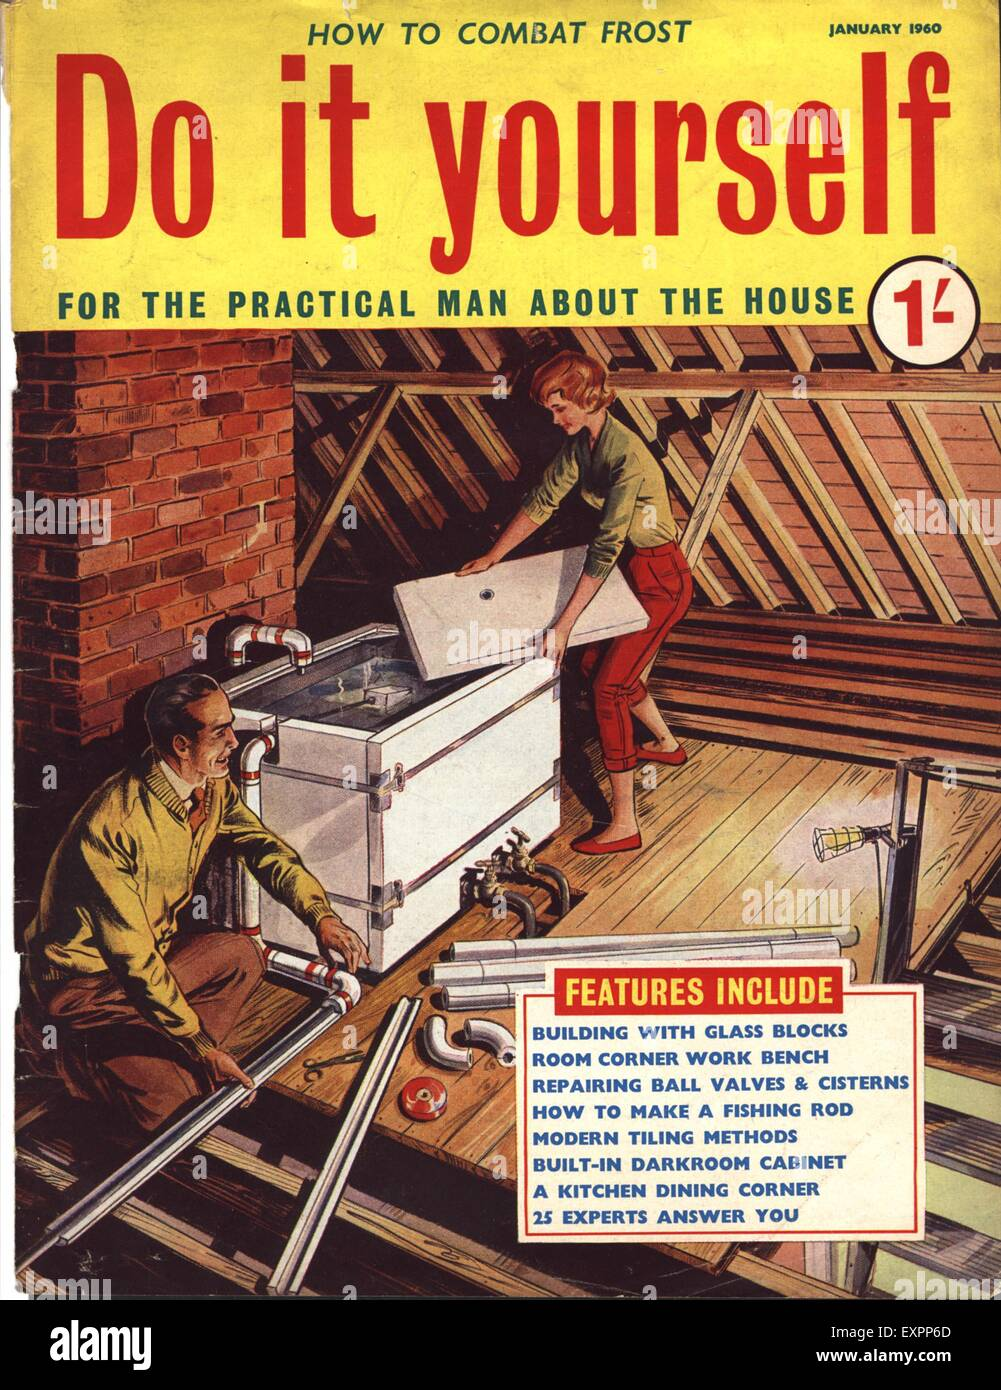 1960s uk do it yourself magazine cover stock photo 85322901 alamy 1960s uk do it yourself magazine cover solutioingenieria Gallery